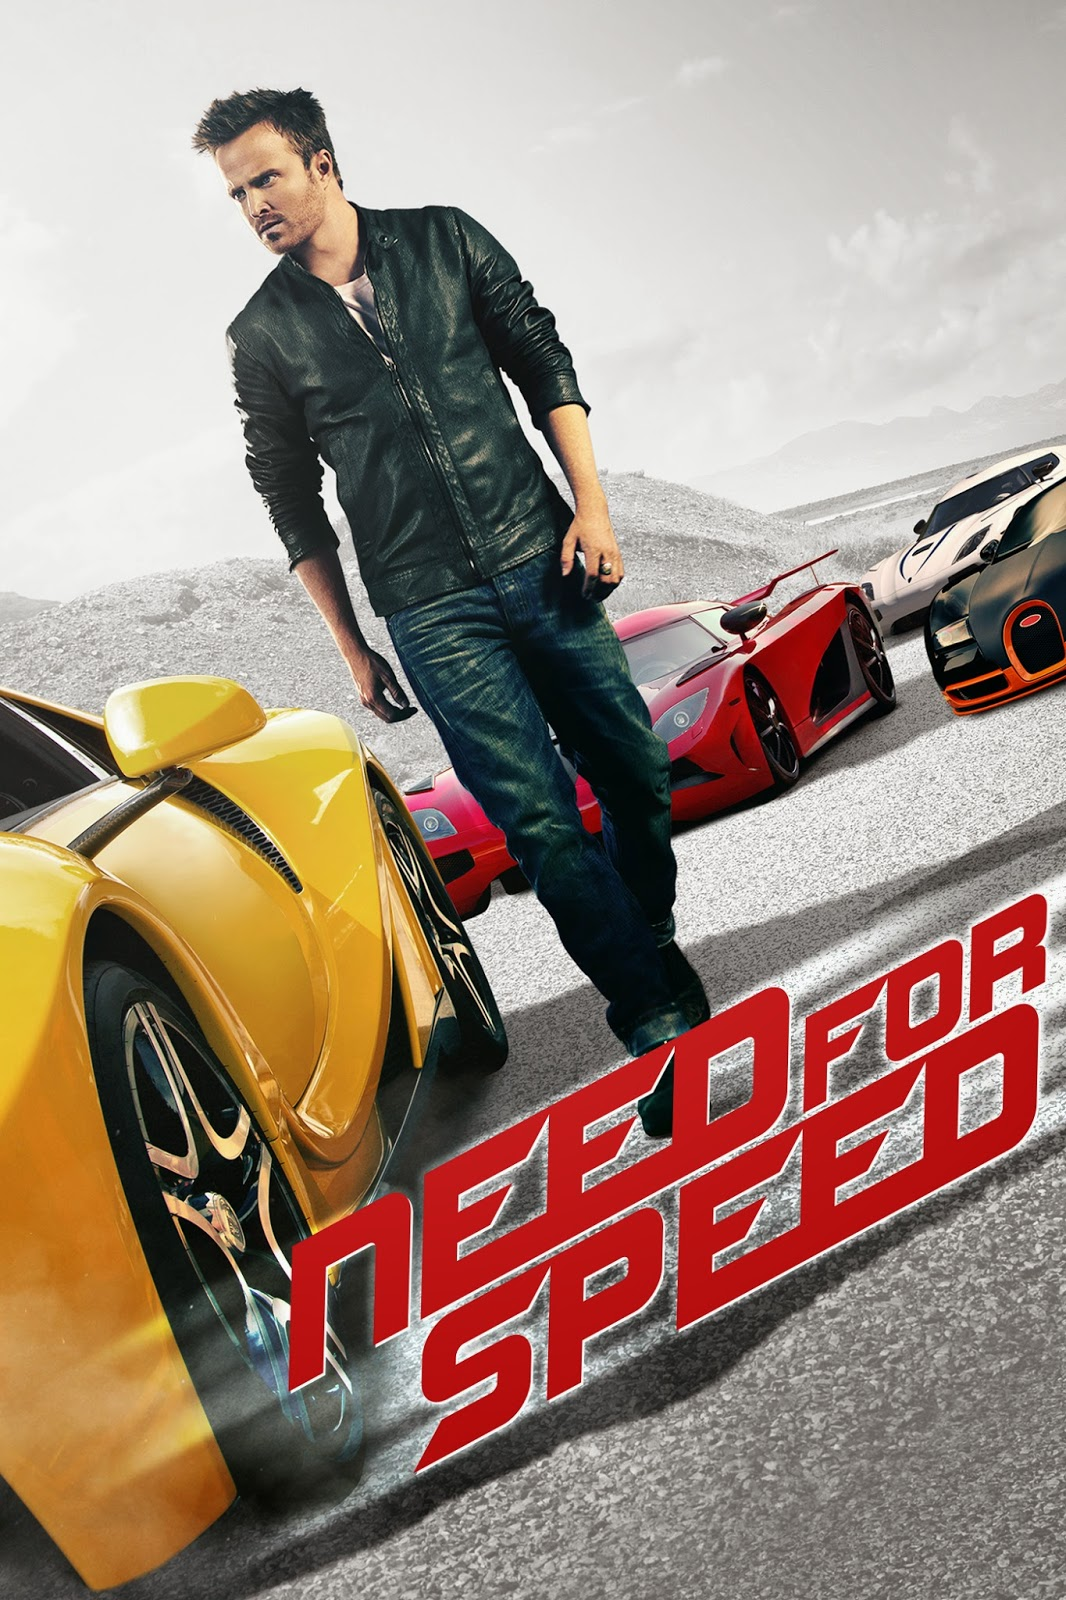 itunes movies and tv shows premium site need for speed itunes movie full hd. Black Bedroom Furniture Sets. Home Design Ideas